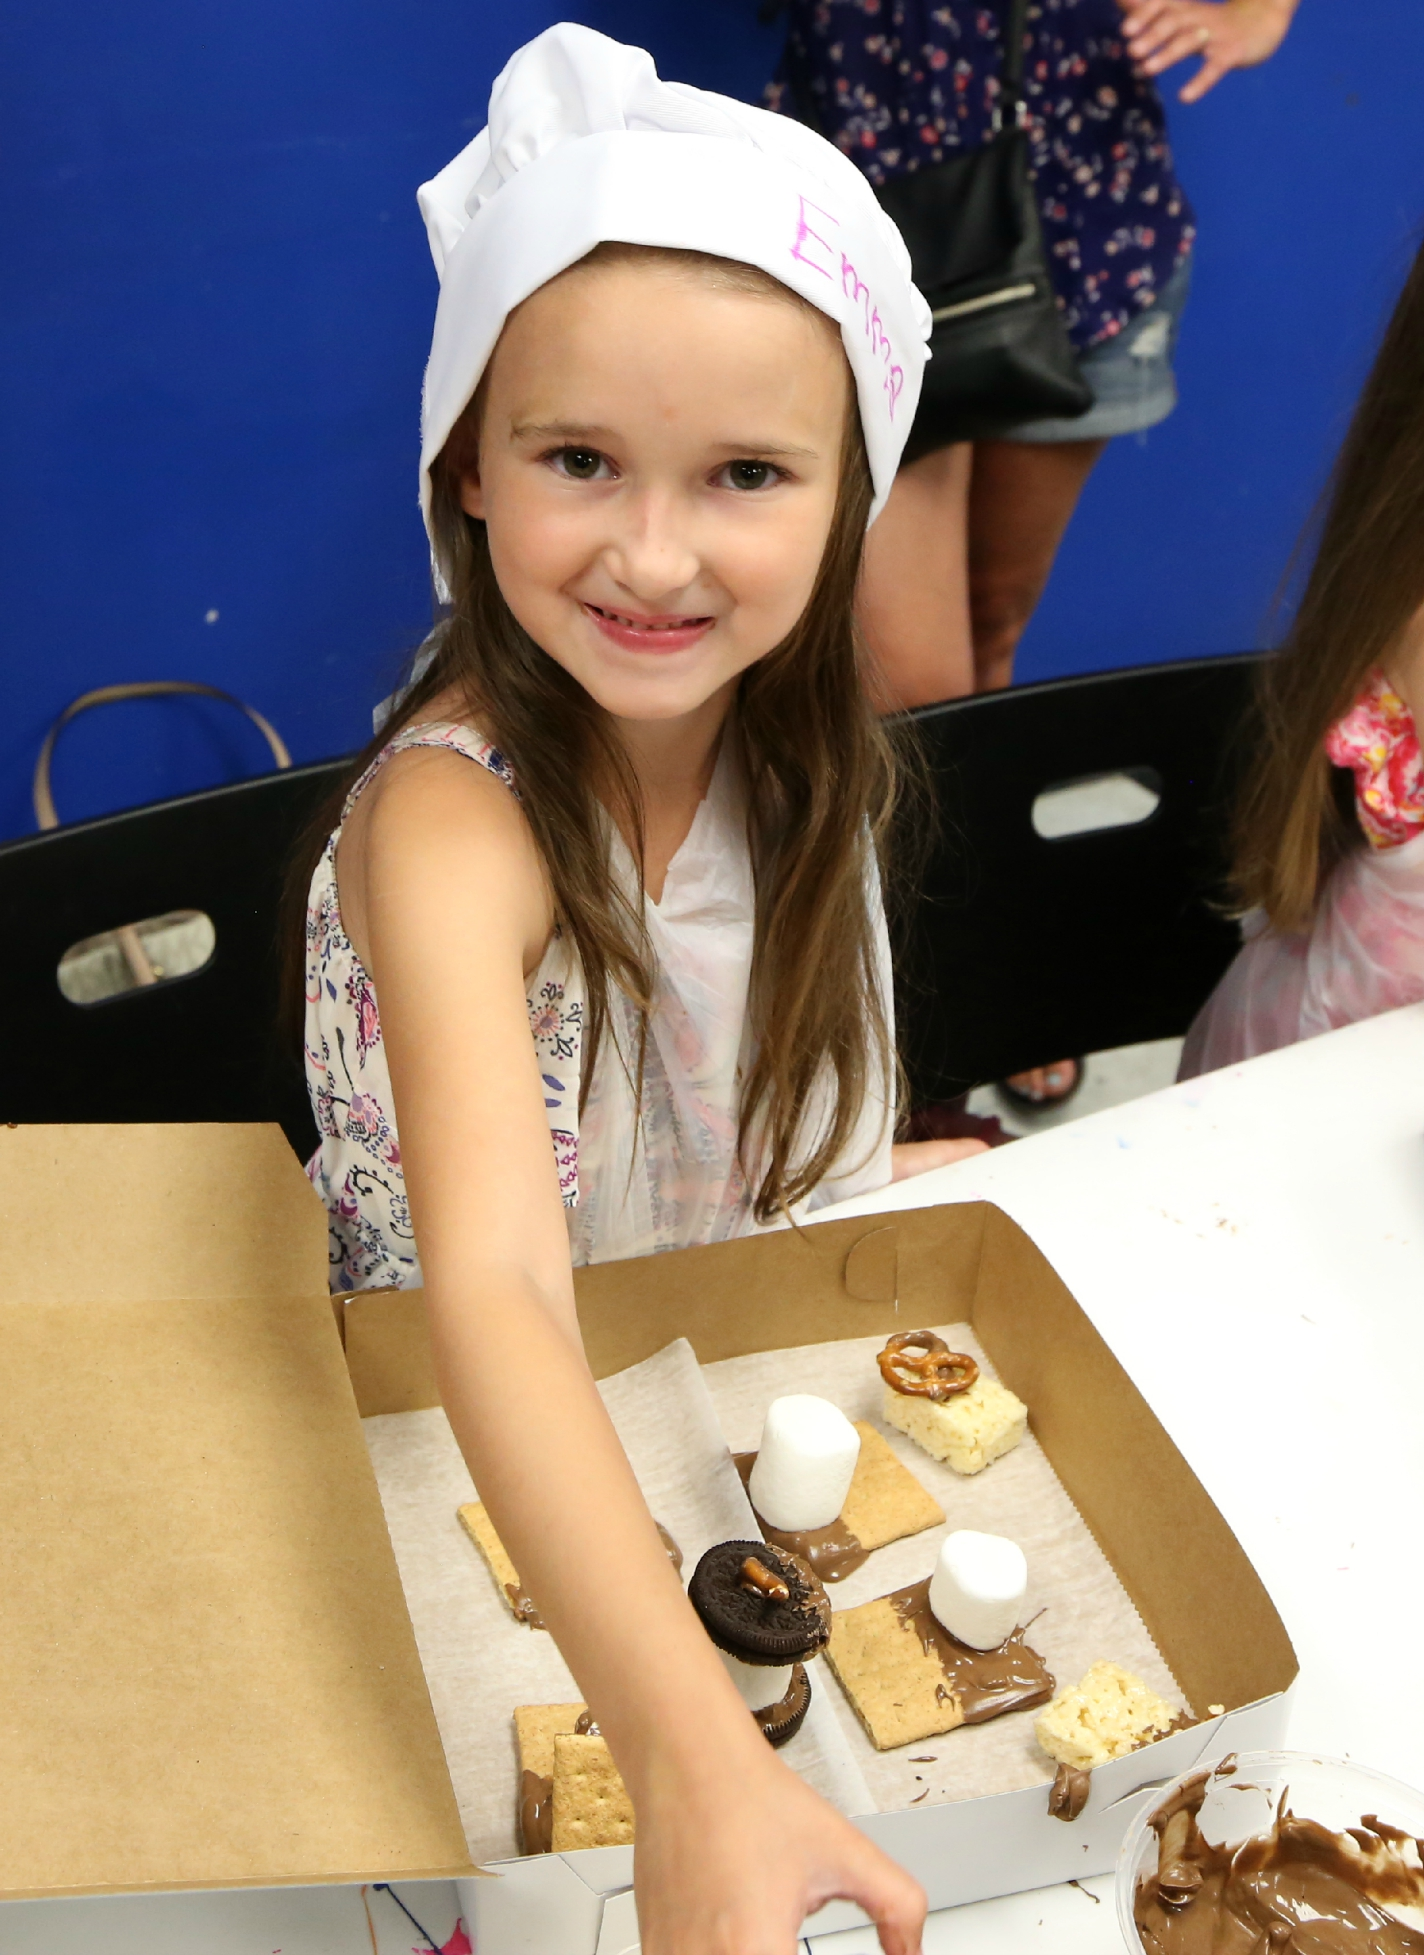 Emma Turning 6 and Making Chocolate at Her Party